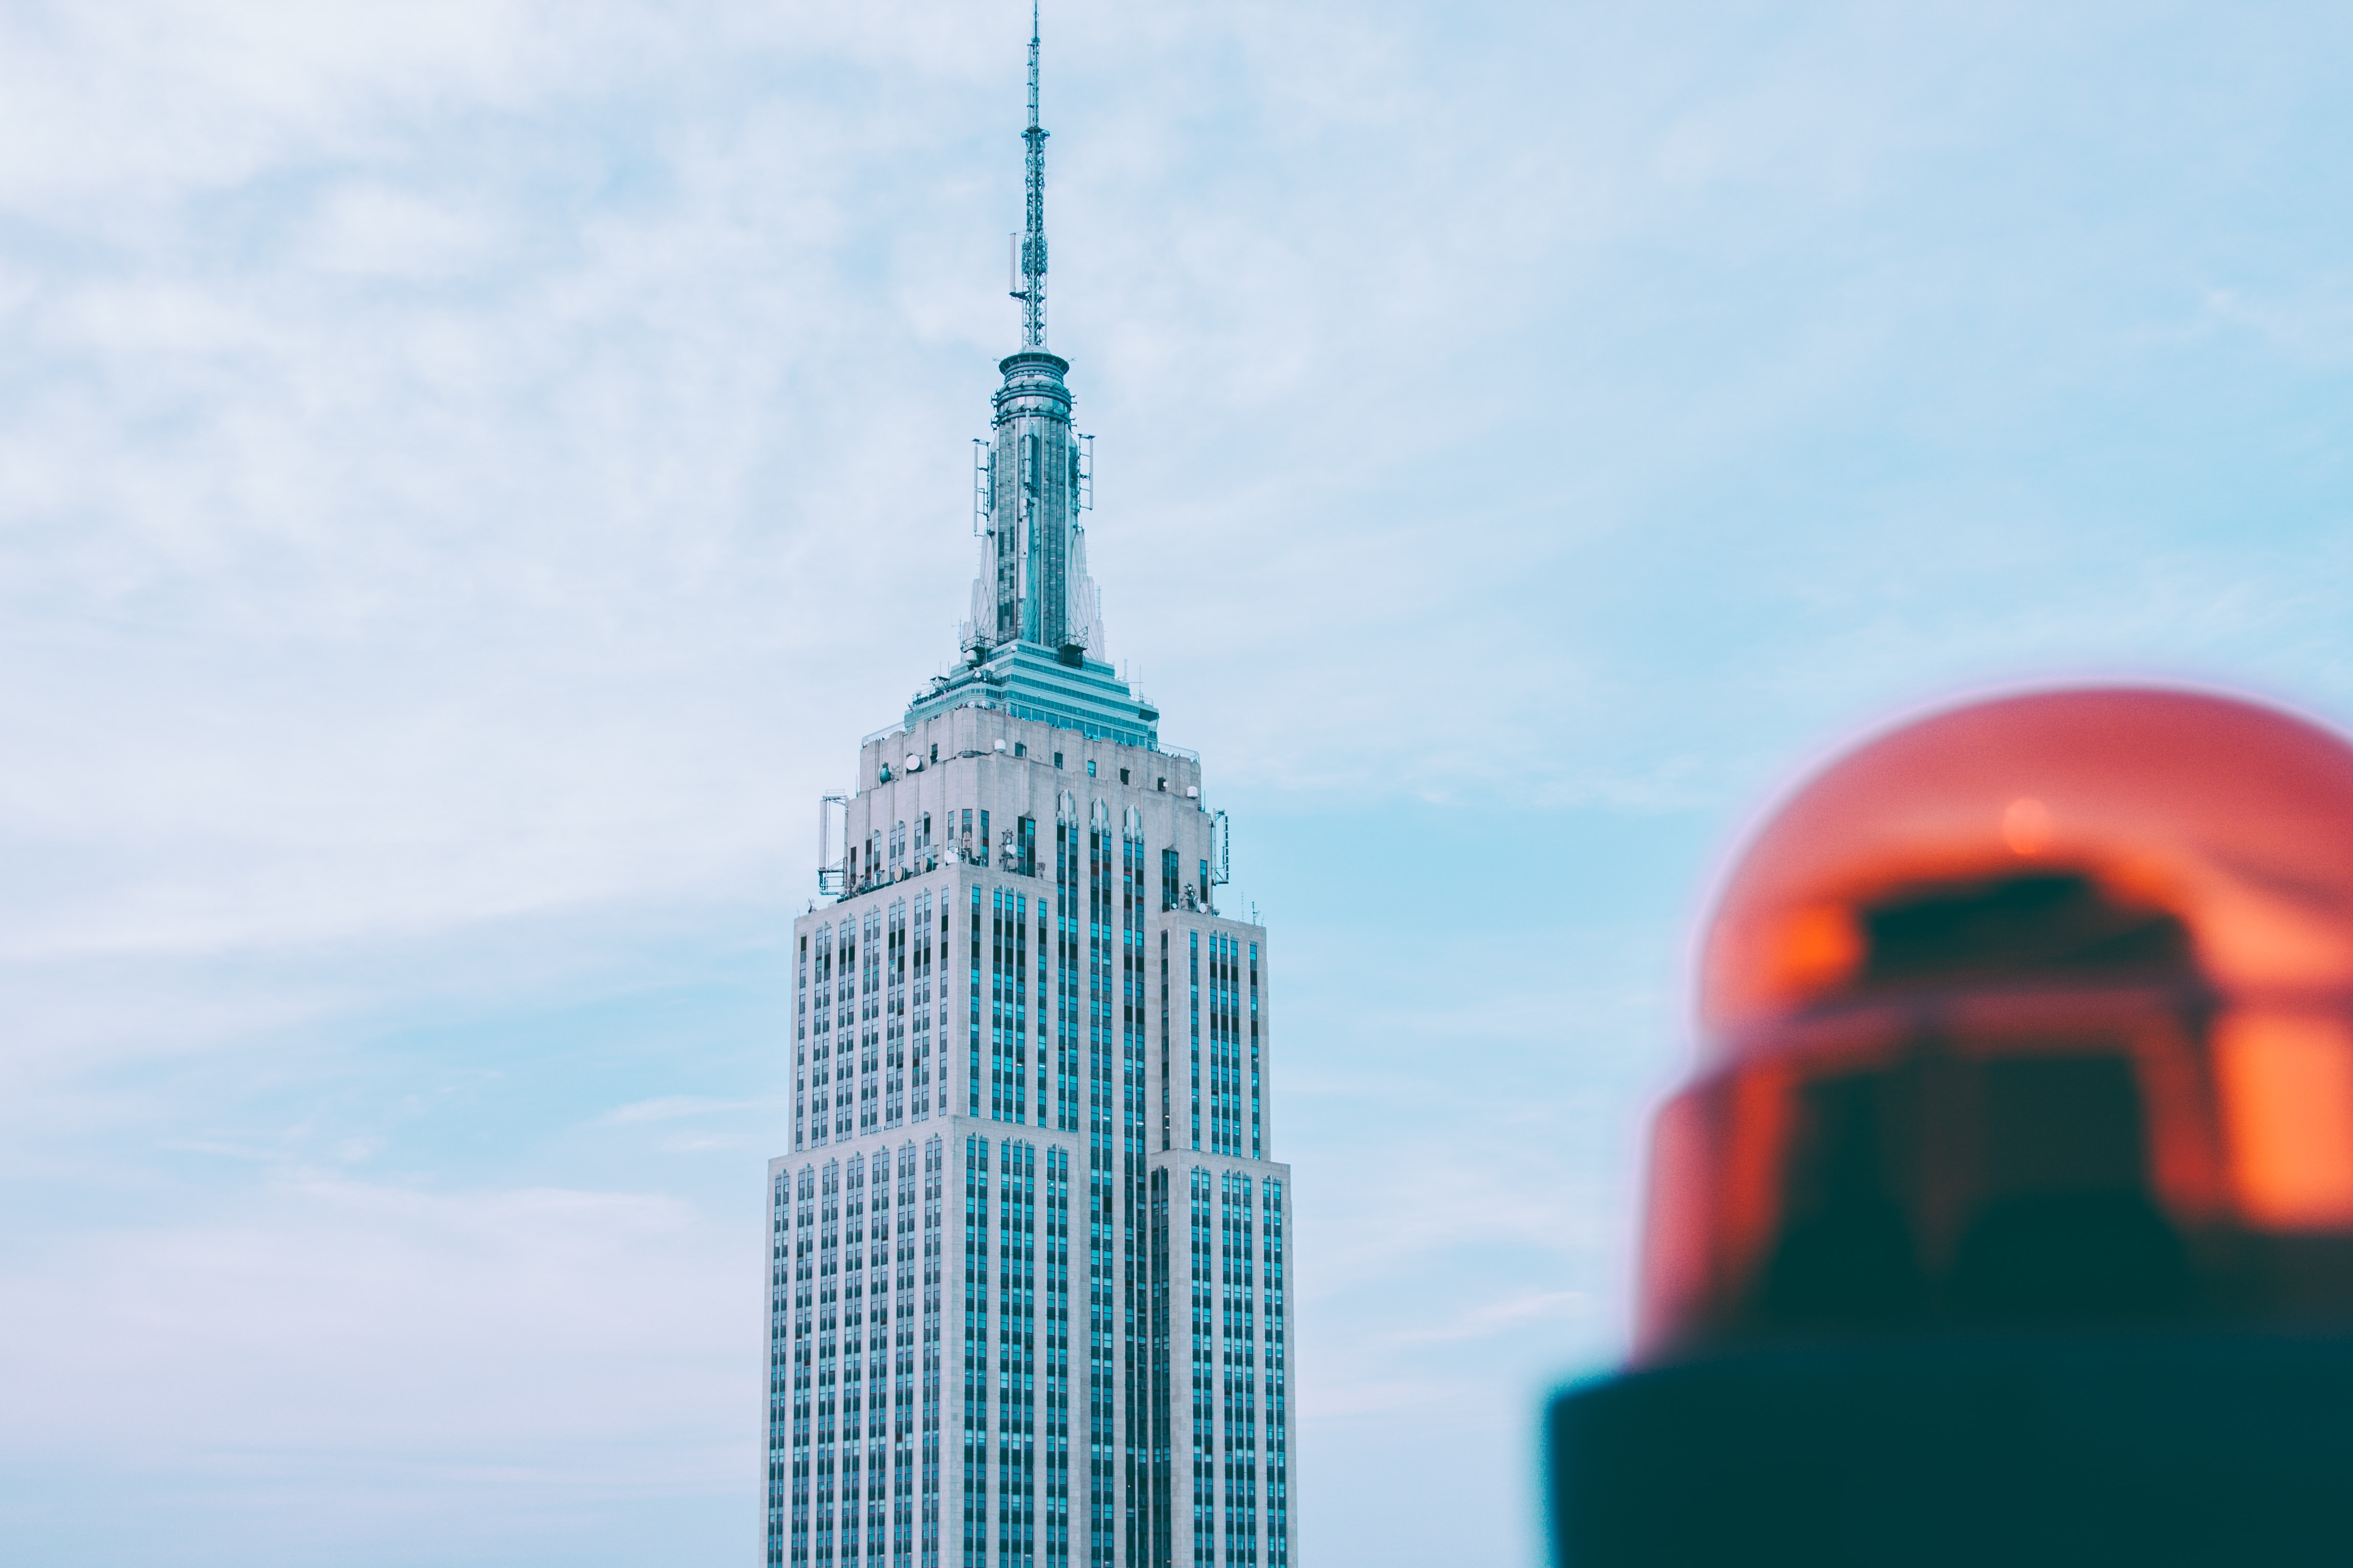 View of the top of the Empire State Building with blue sky behind it